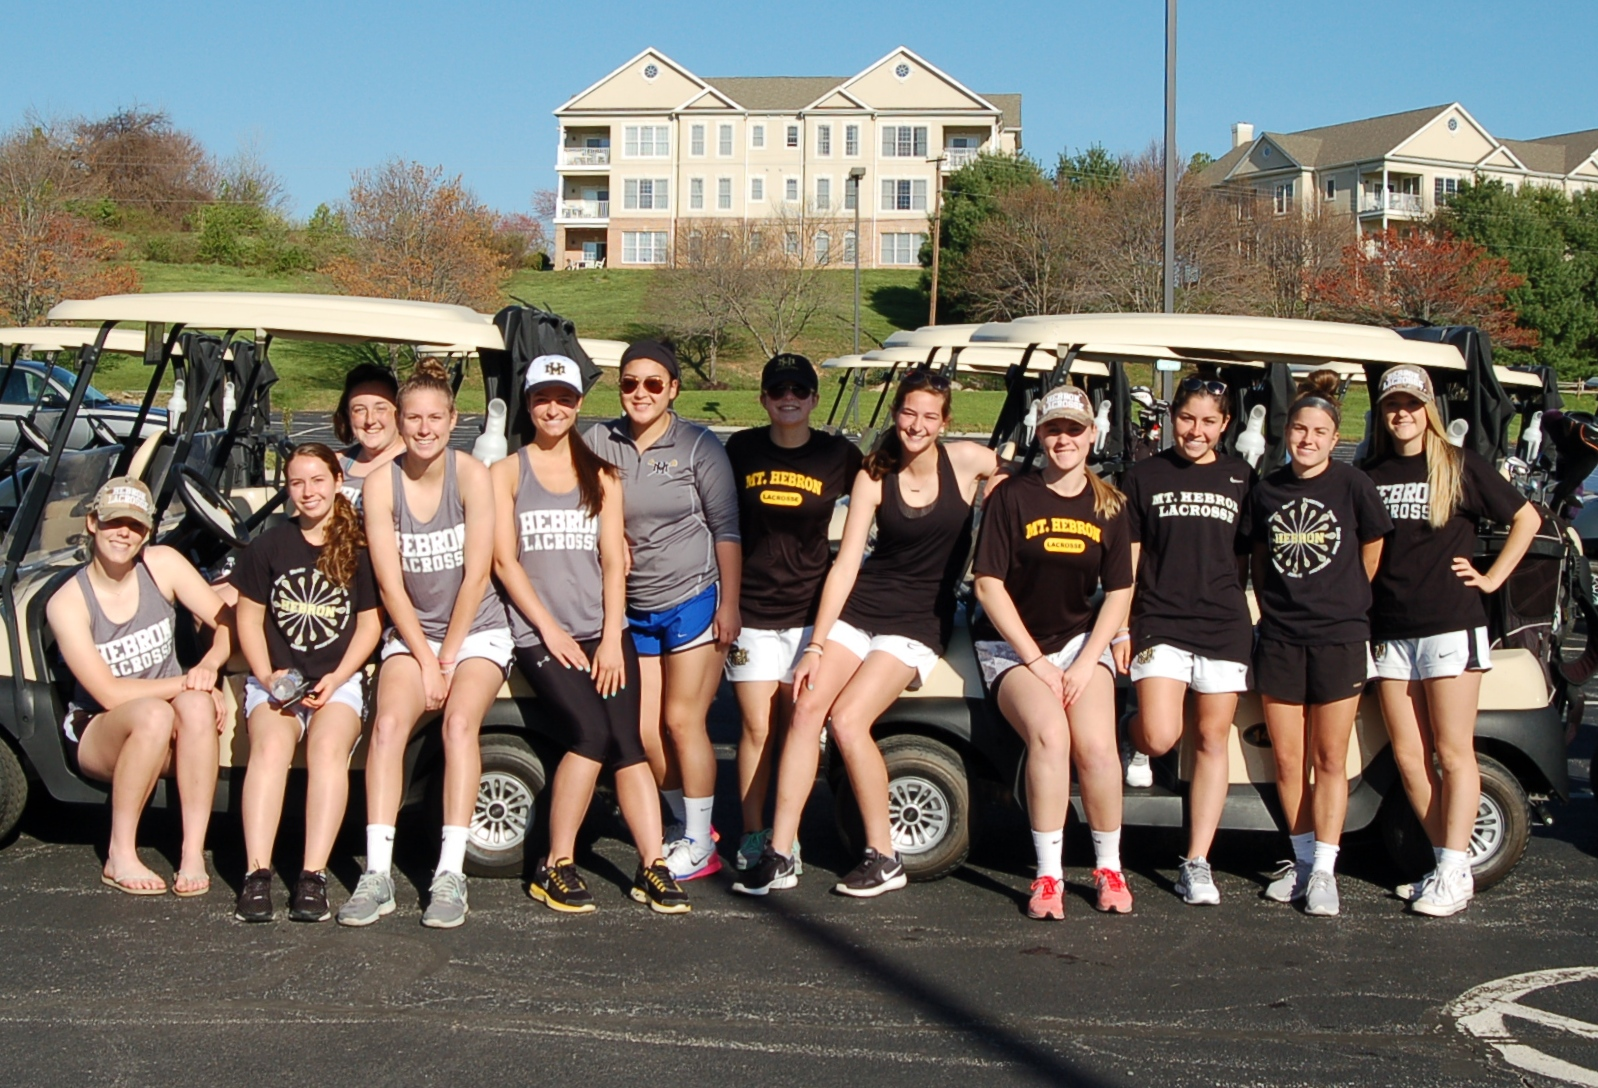 hebron girls Lakewood girls summer softball program: sports league web site provided and hosted free of charge by leaguelineupcom - the youth and amateur sports portal.